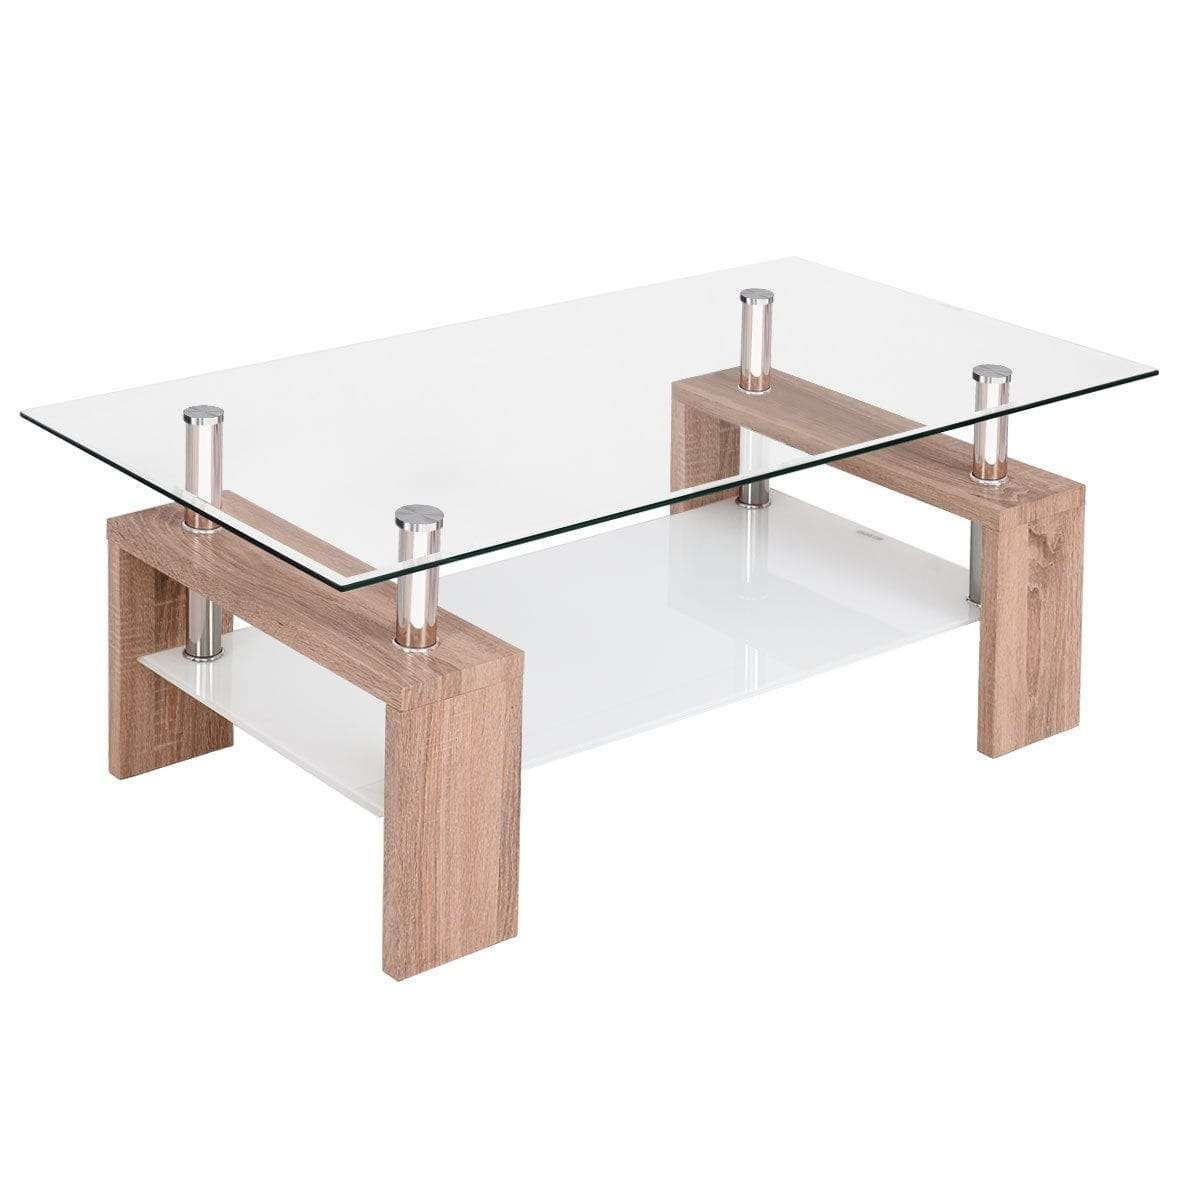 Recent Glass Coffee Table With Shelf Intended For Costway Rectangular Tempered Glass Coffee Table W/shelf Wood (View 14 of 20)